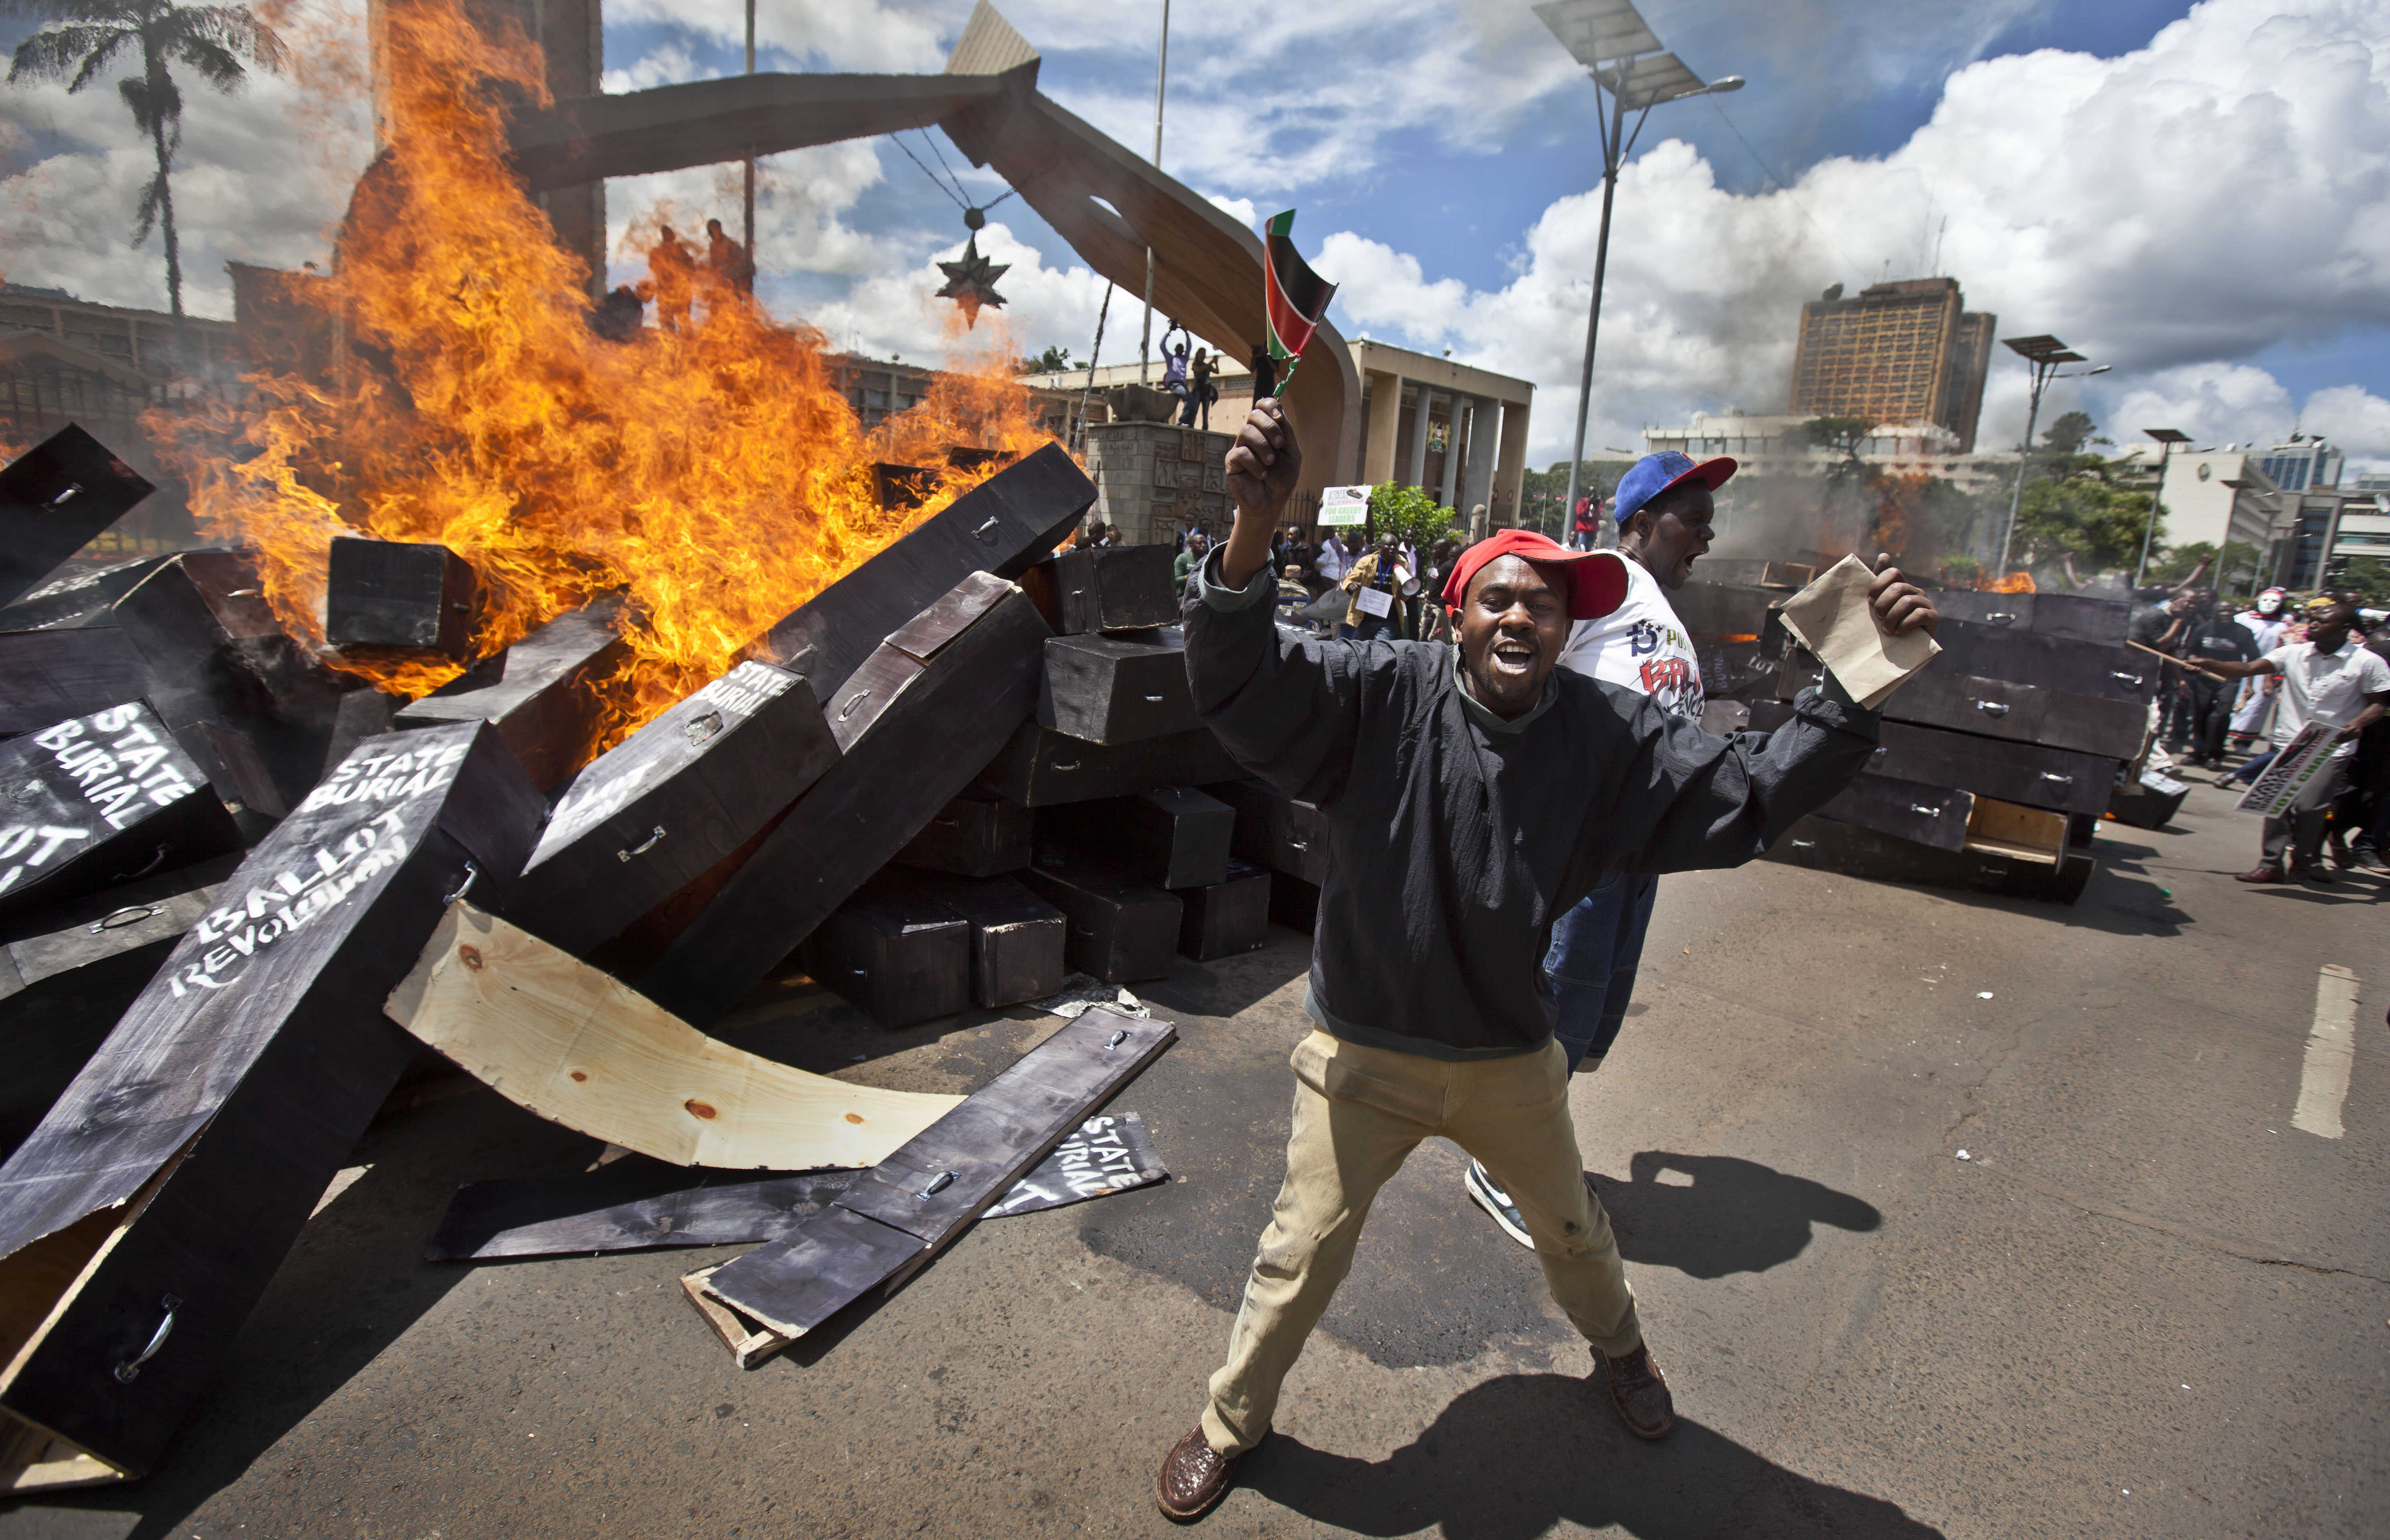 """FILE - In this Wednesday, Jan. 16, 2013 file photo, a demonstrator celebrates after setting fire to mock coffins on which were written """"State Burial, Ballot Revolution"""" outside the Parliament in Nairobi, Kenya. The protest was organized by social campainger Boniface Mwangi over a pay increase for members of parliament."""